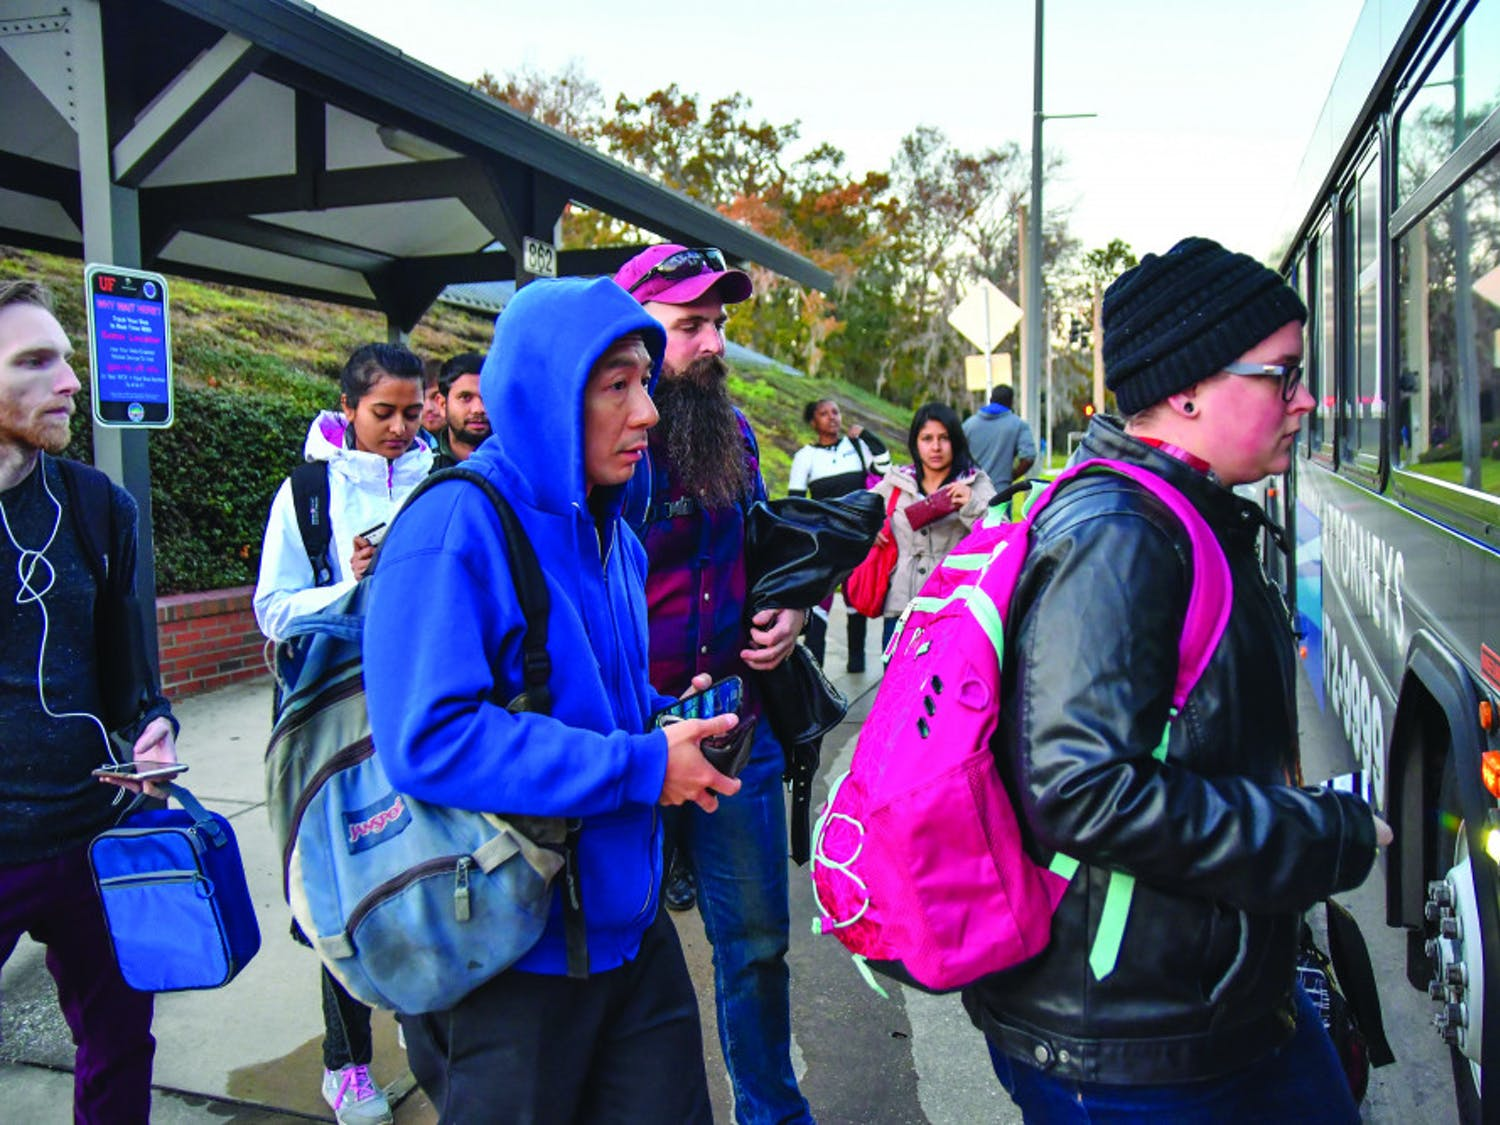 A group of passengers wearing heavy jackets and long pants board a Regional Transit System bus on Newell Drive on Monday, Jan. 9, 2017. At the time, the temperature was already in the mid-50s and predicted to drop later that night.